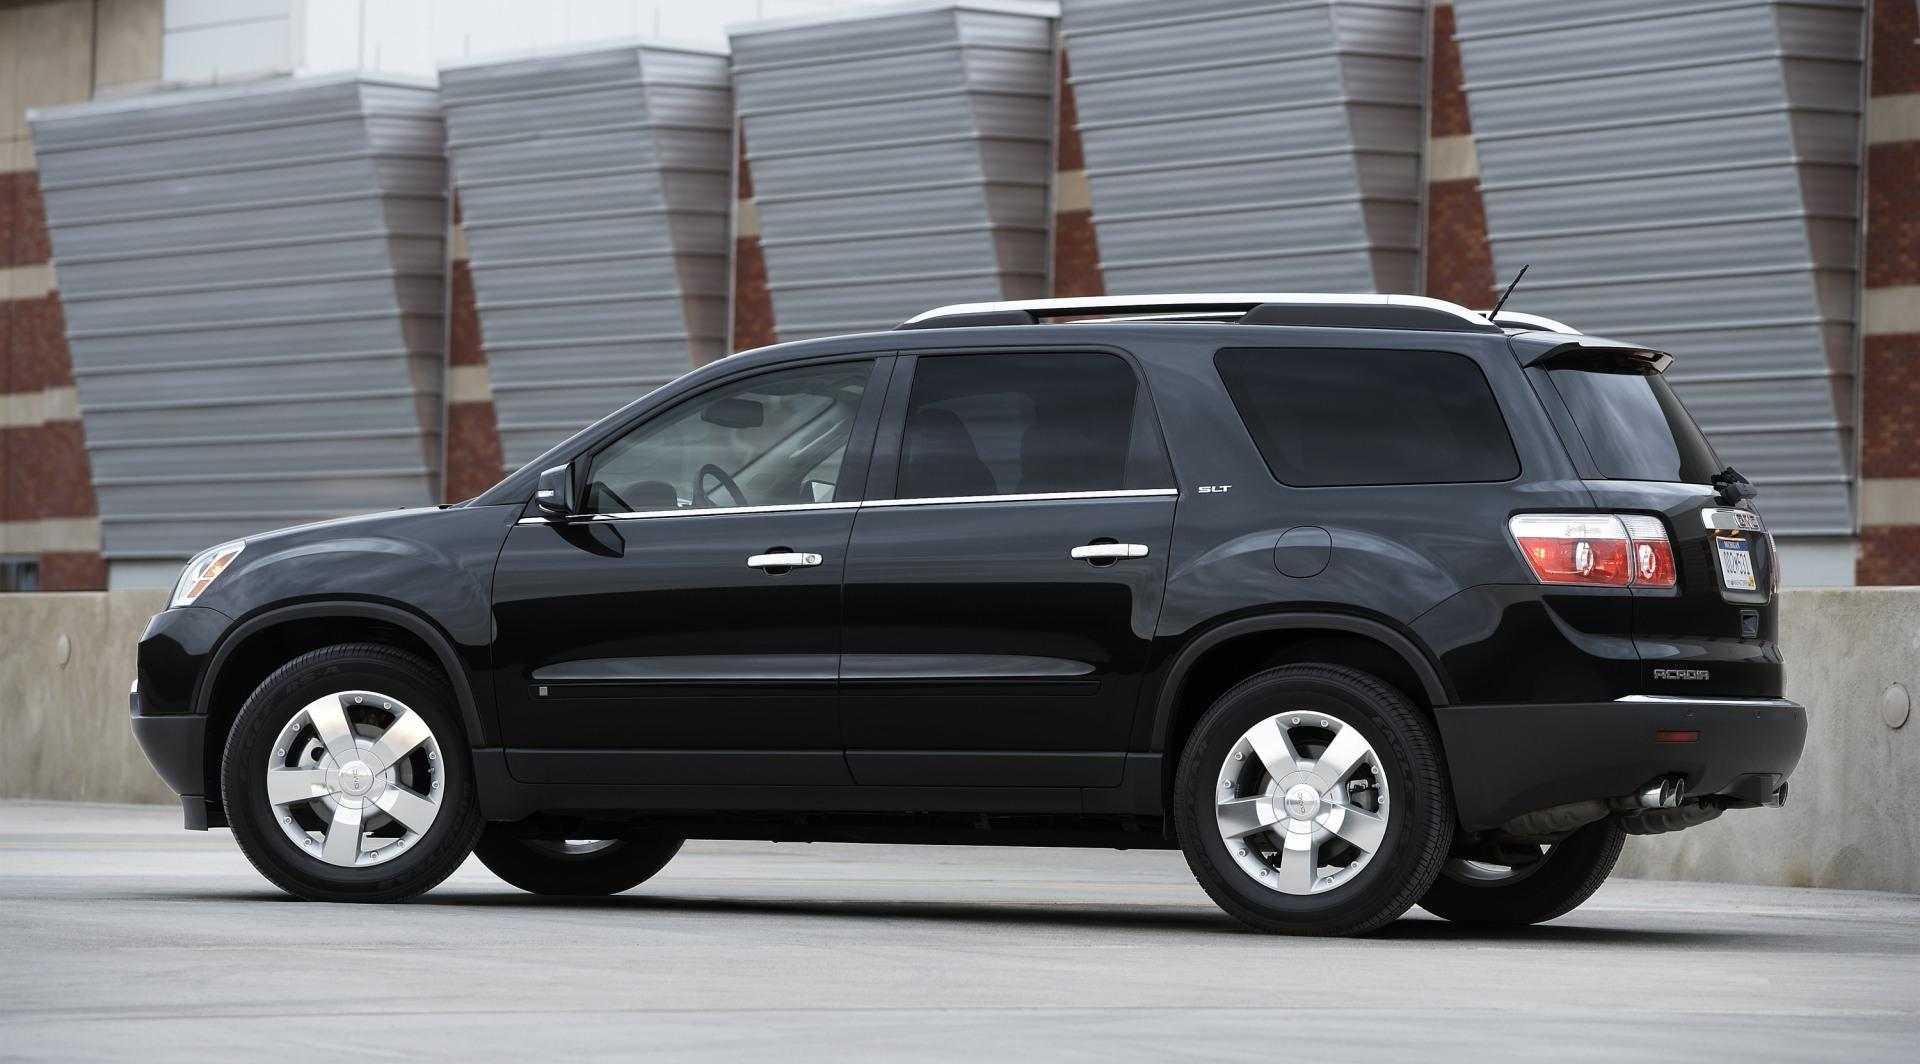 gmc acadia images #12